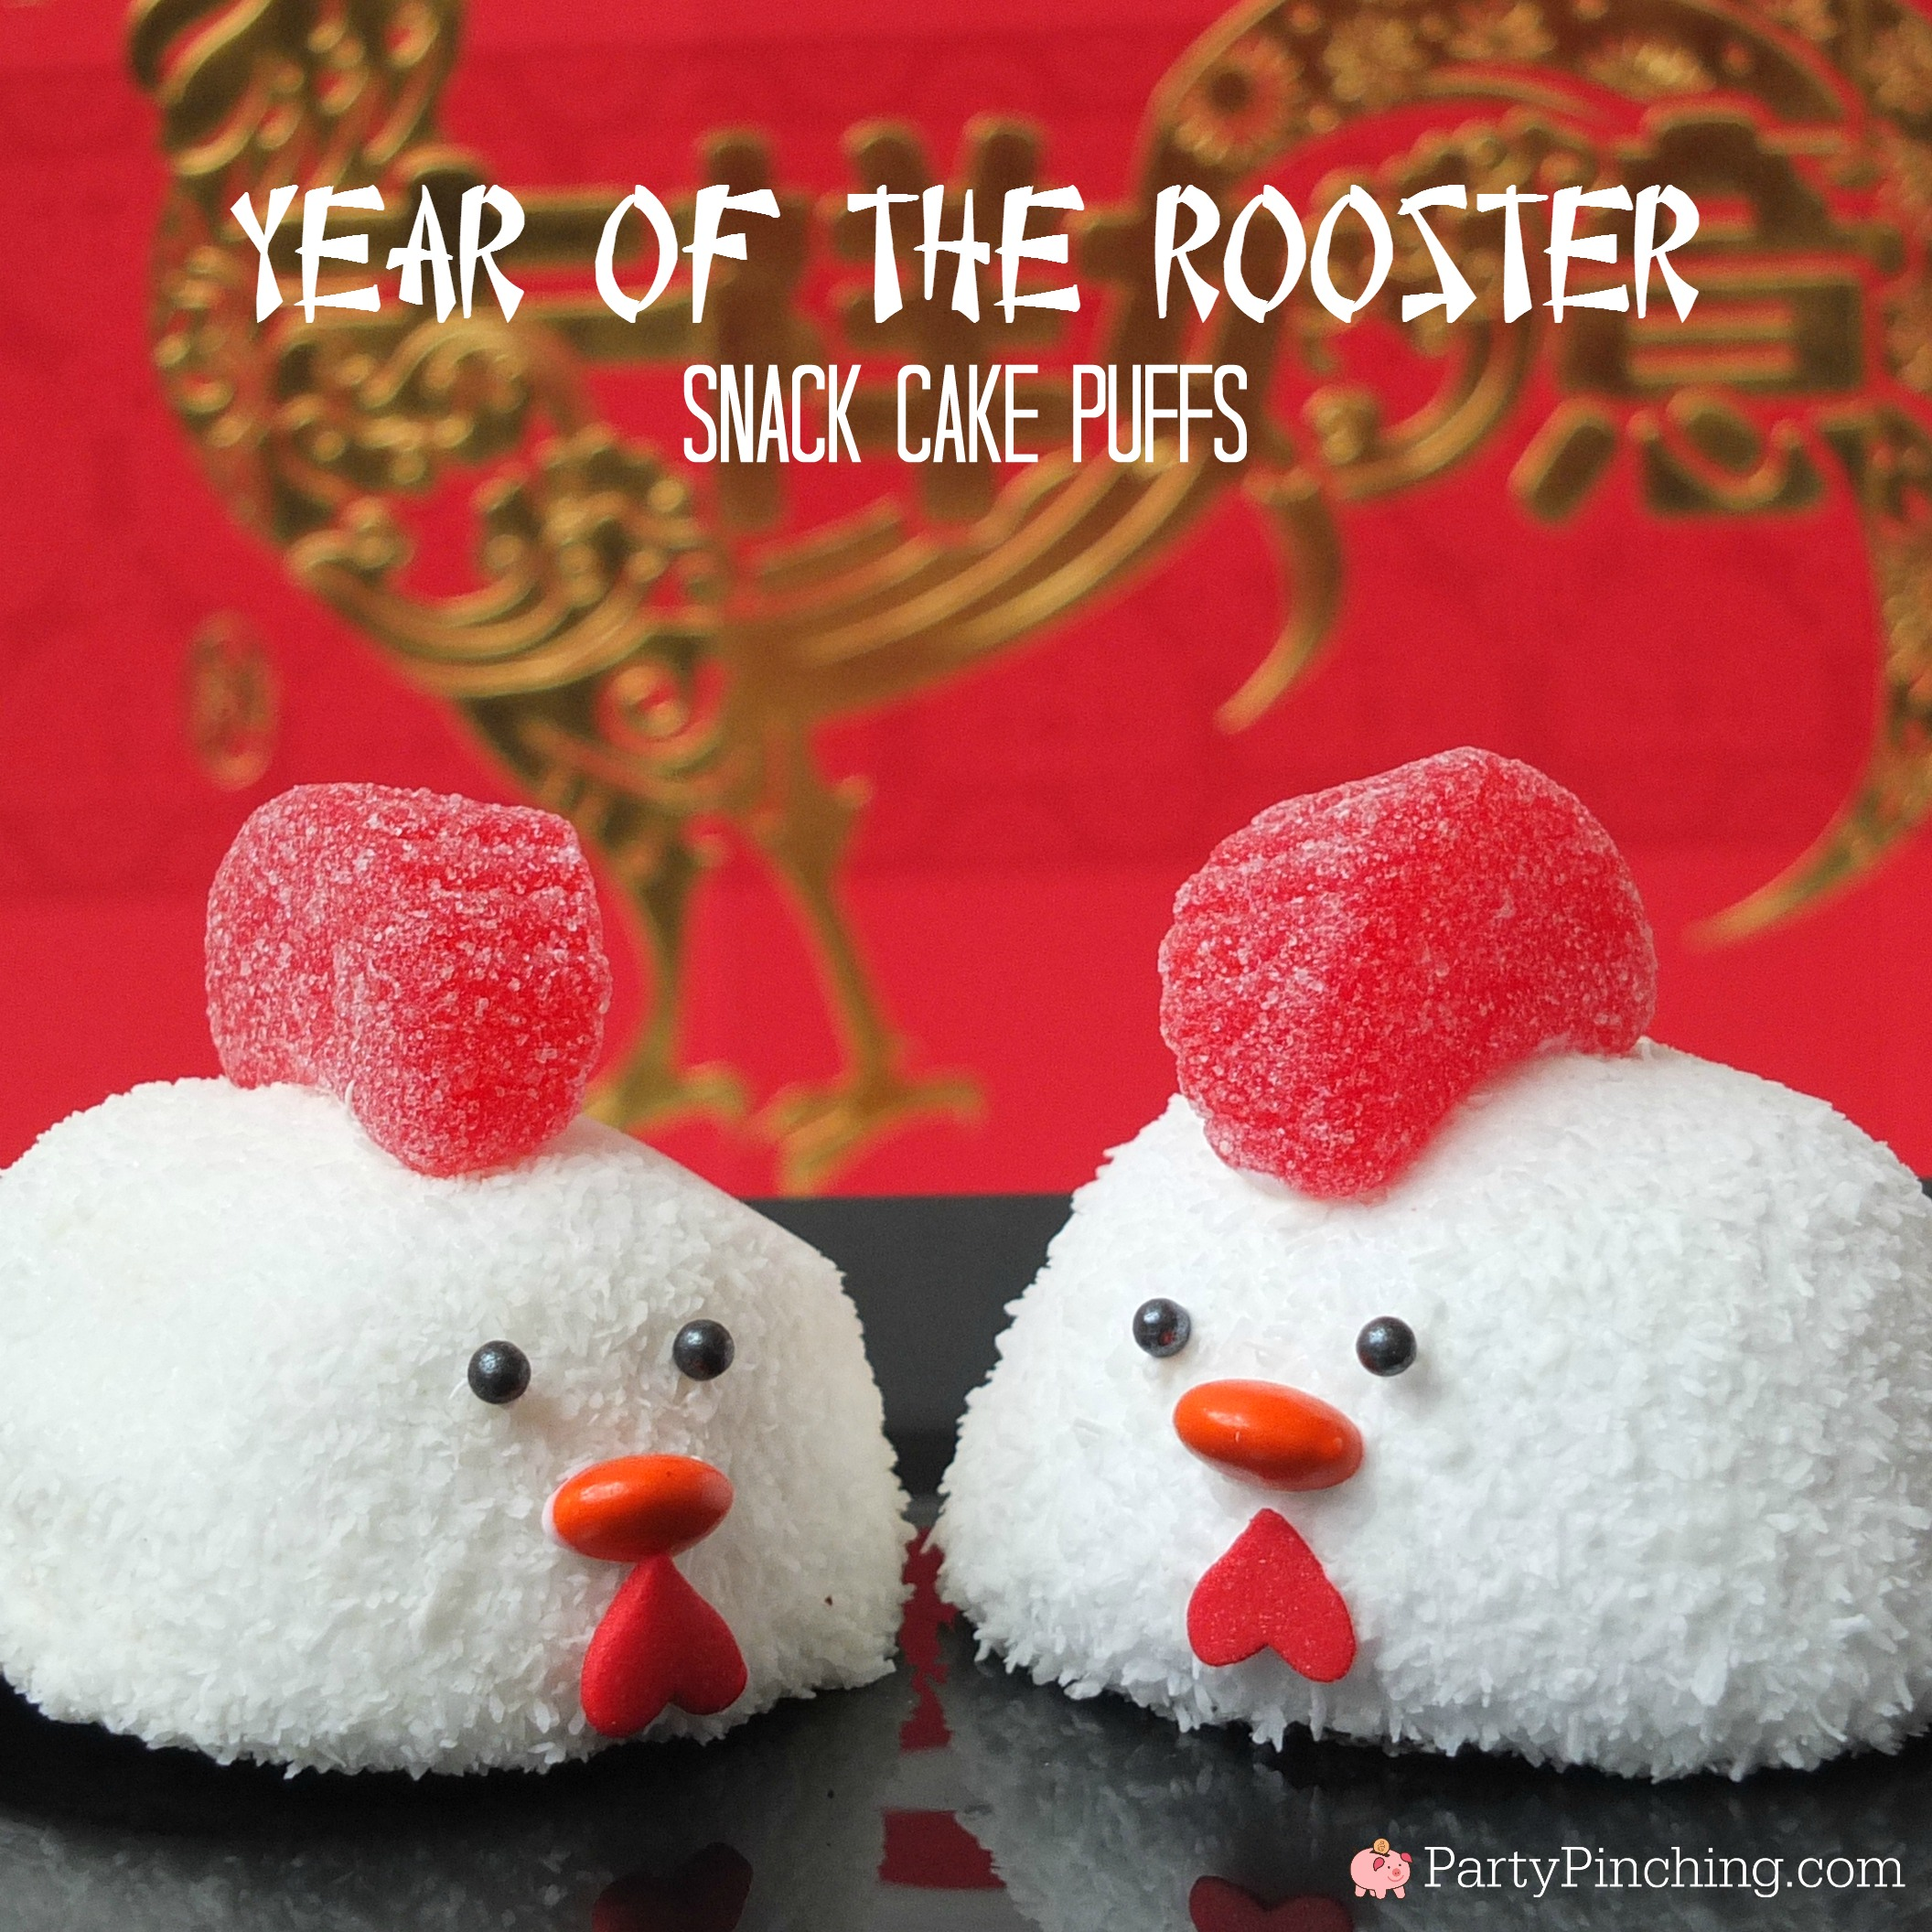 Year of the Rooster Snack Cake Puffs, Chinese New Year Rooster dessert, Lunar New Year Rooster treat, fun food for kids, sweet treats, cute Rooster snack cake, Chinese New Year Lunar New Year food ideas, cute food, adorable rooster